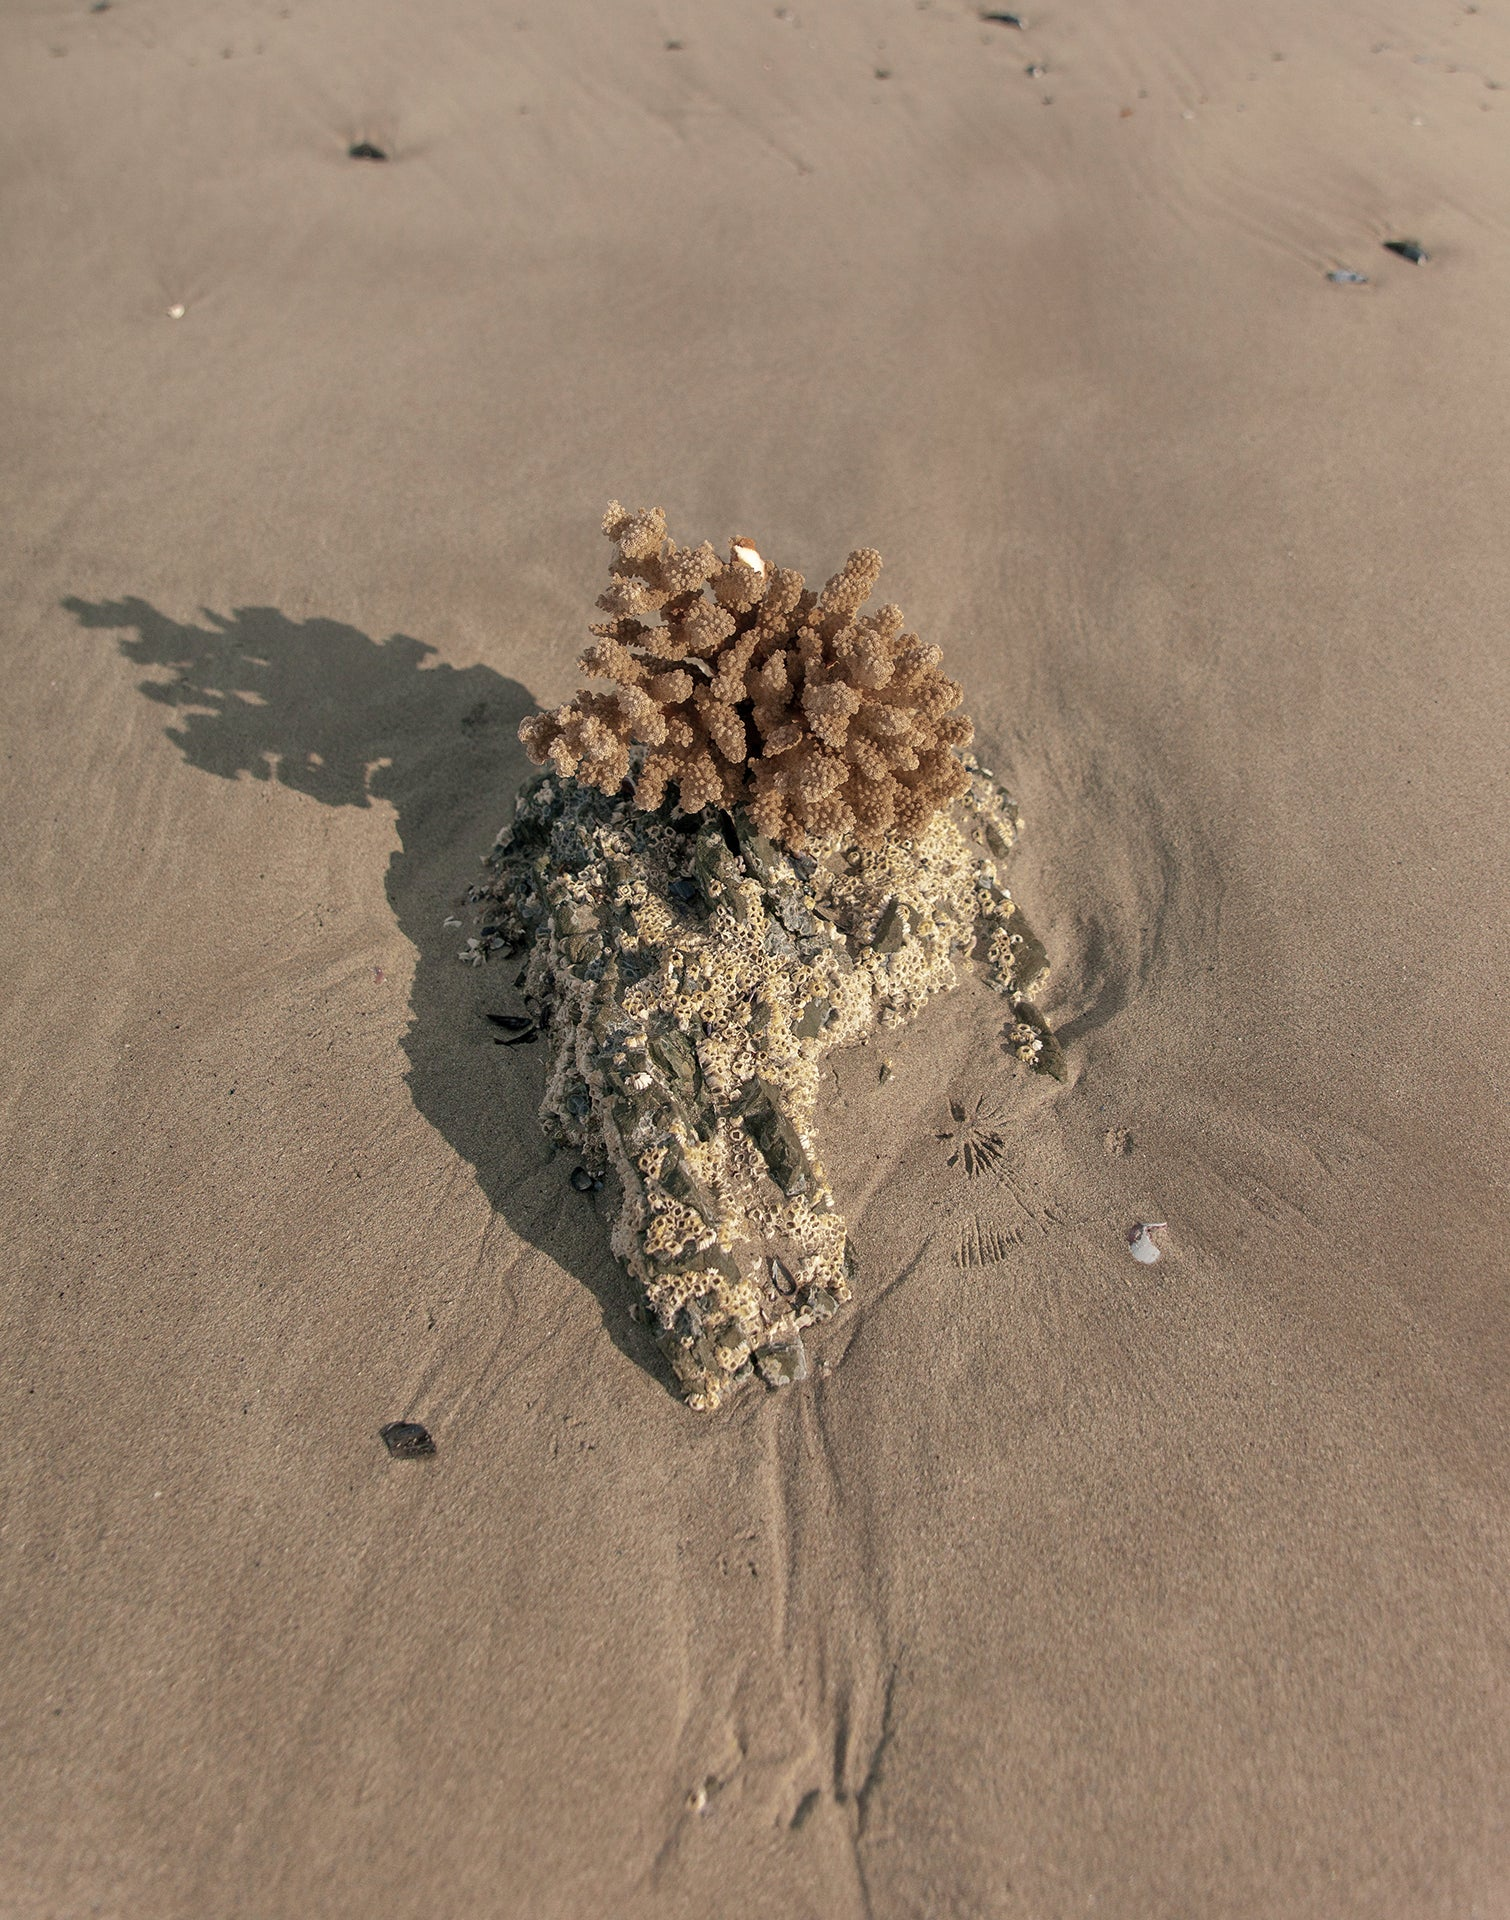 Theodore Afrika - Still Symmetry 10 - Print of some coral on the beach that looks like it might be a face of a creature.